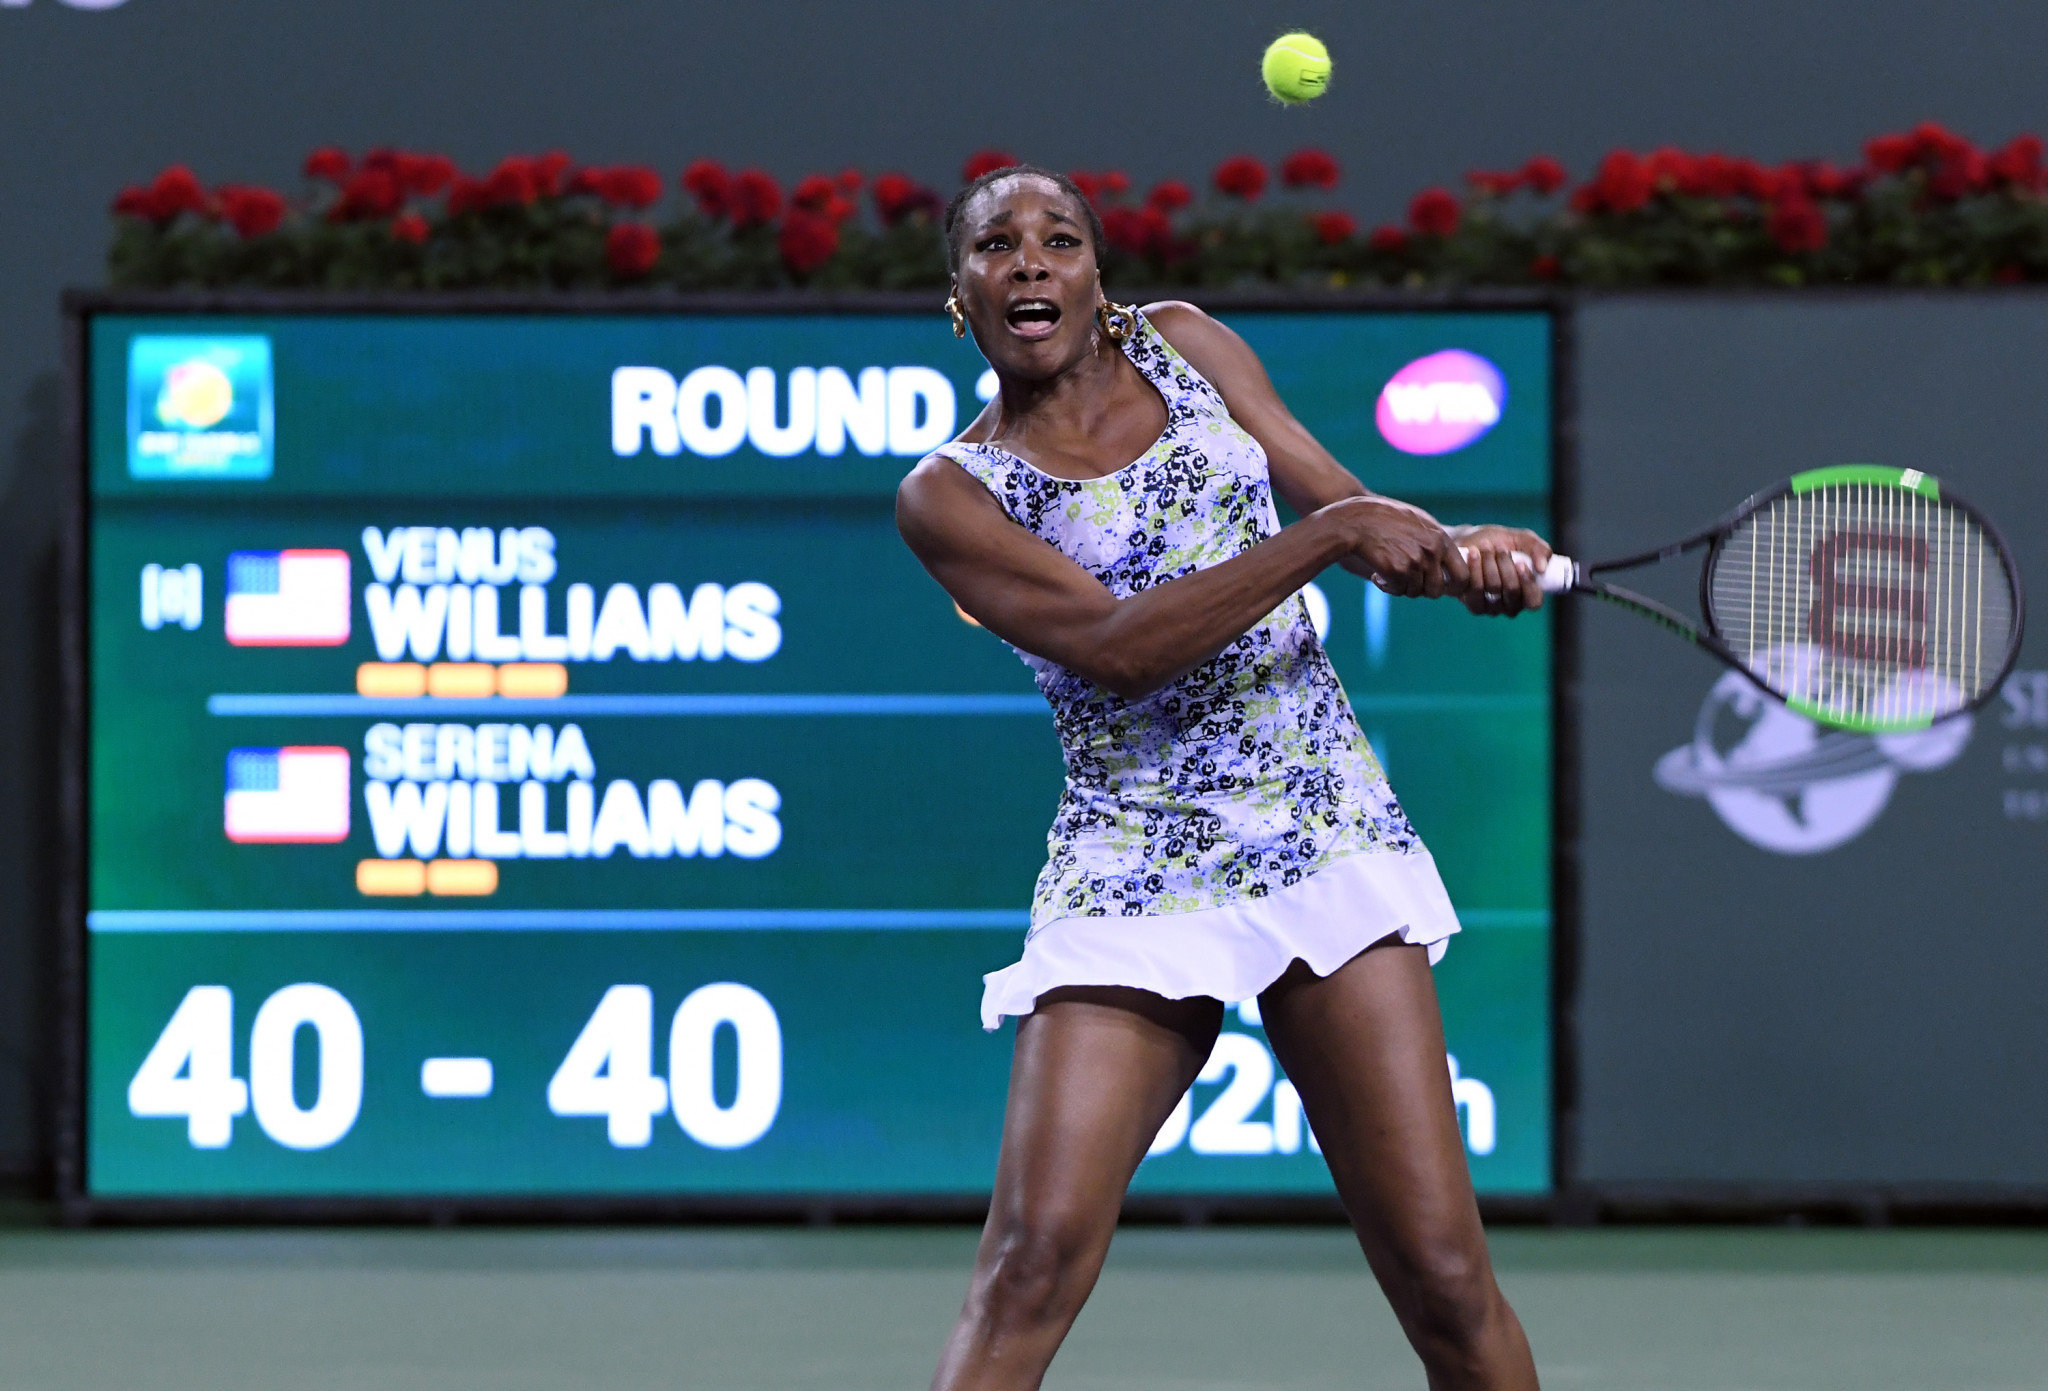 America's Venus Williams overcame her sister Serena at Indian Wells ©Getty Images